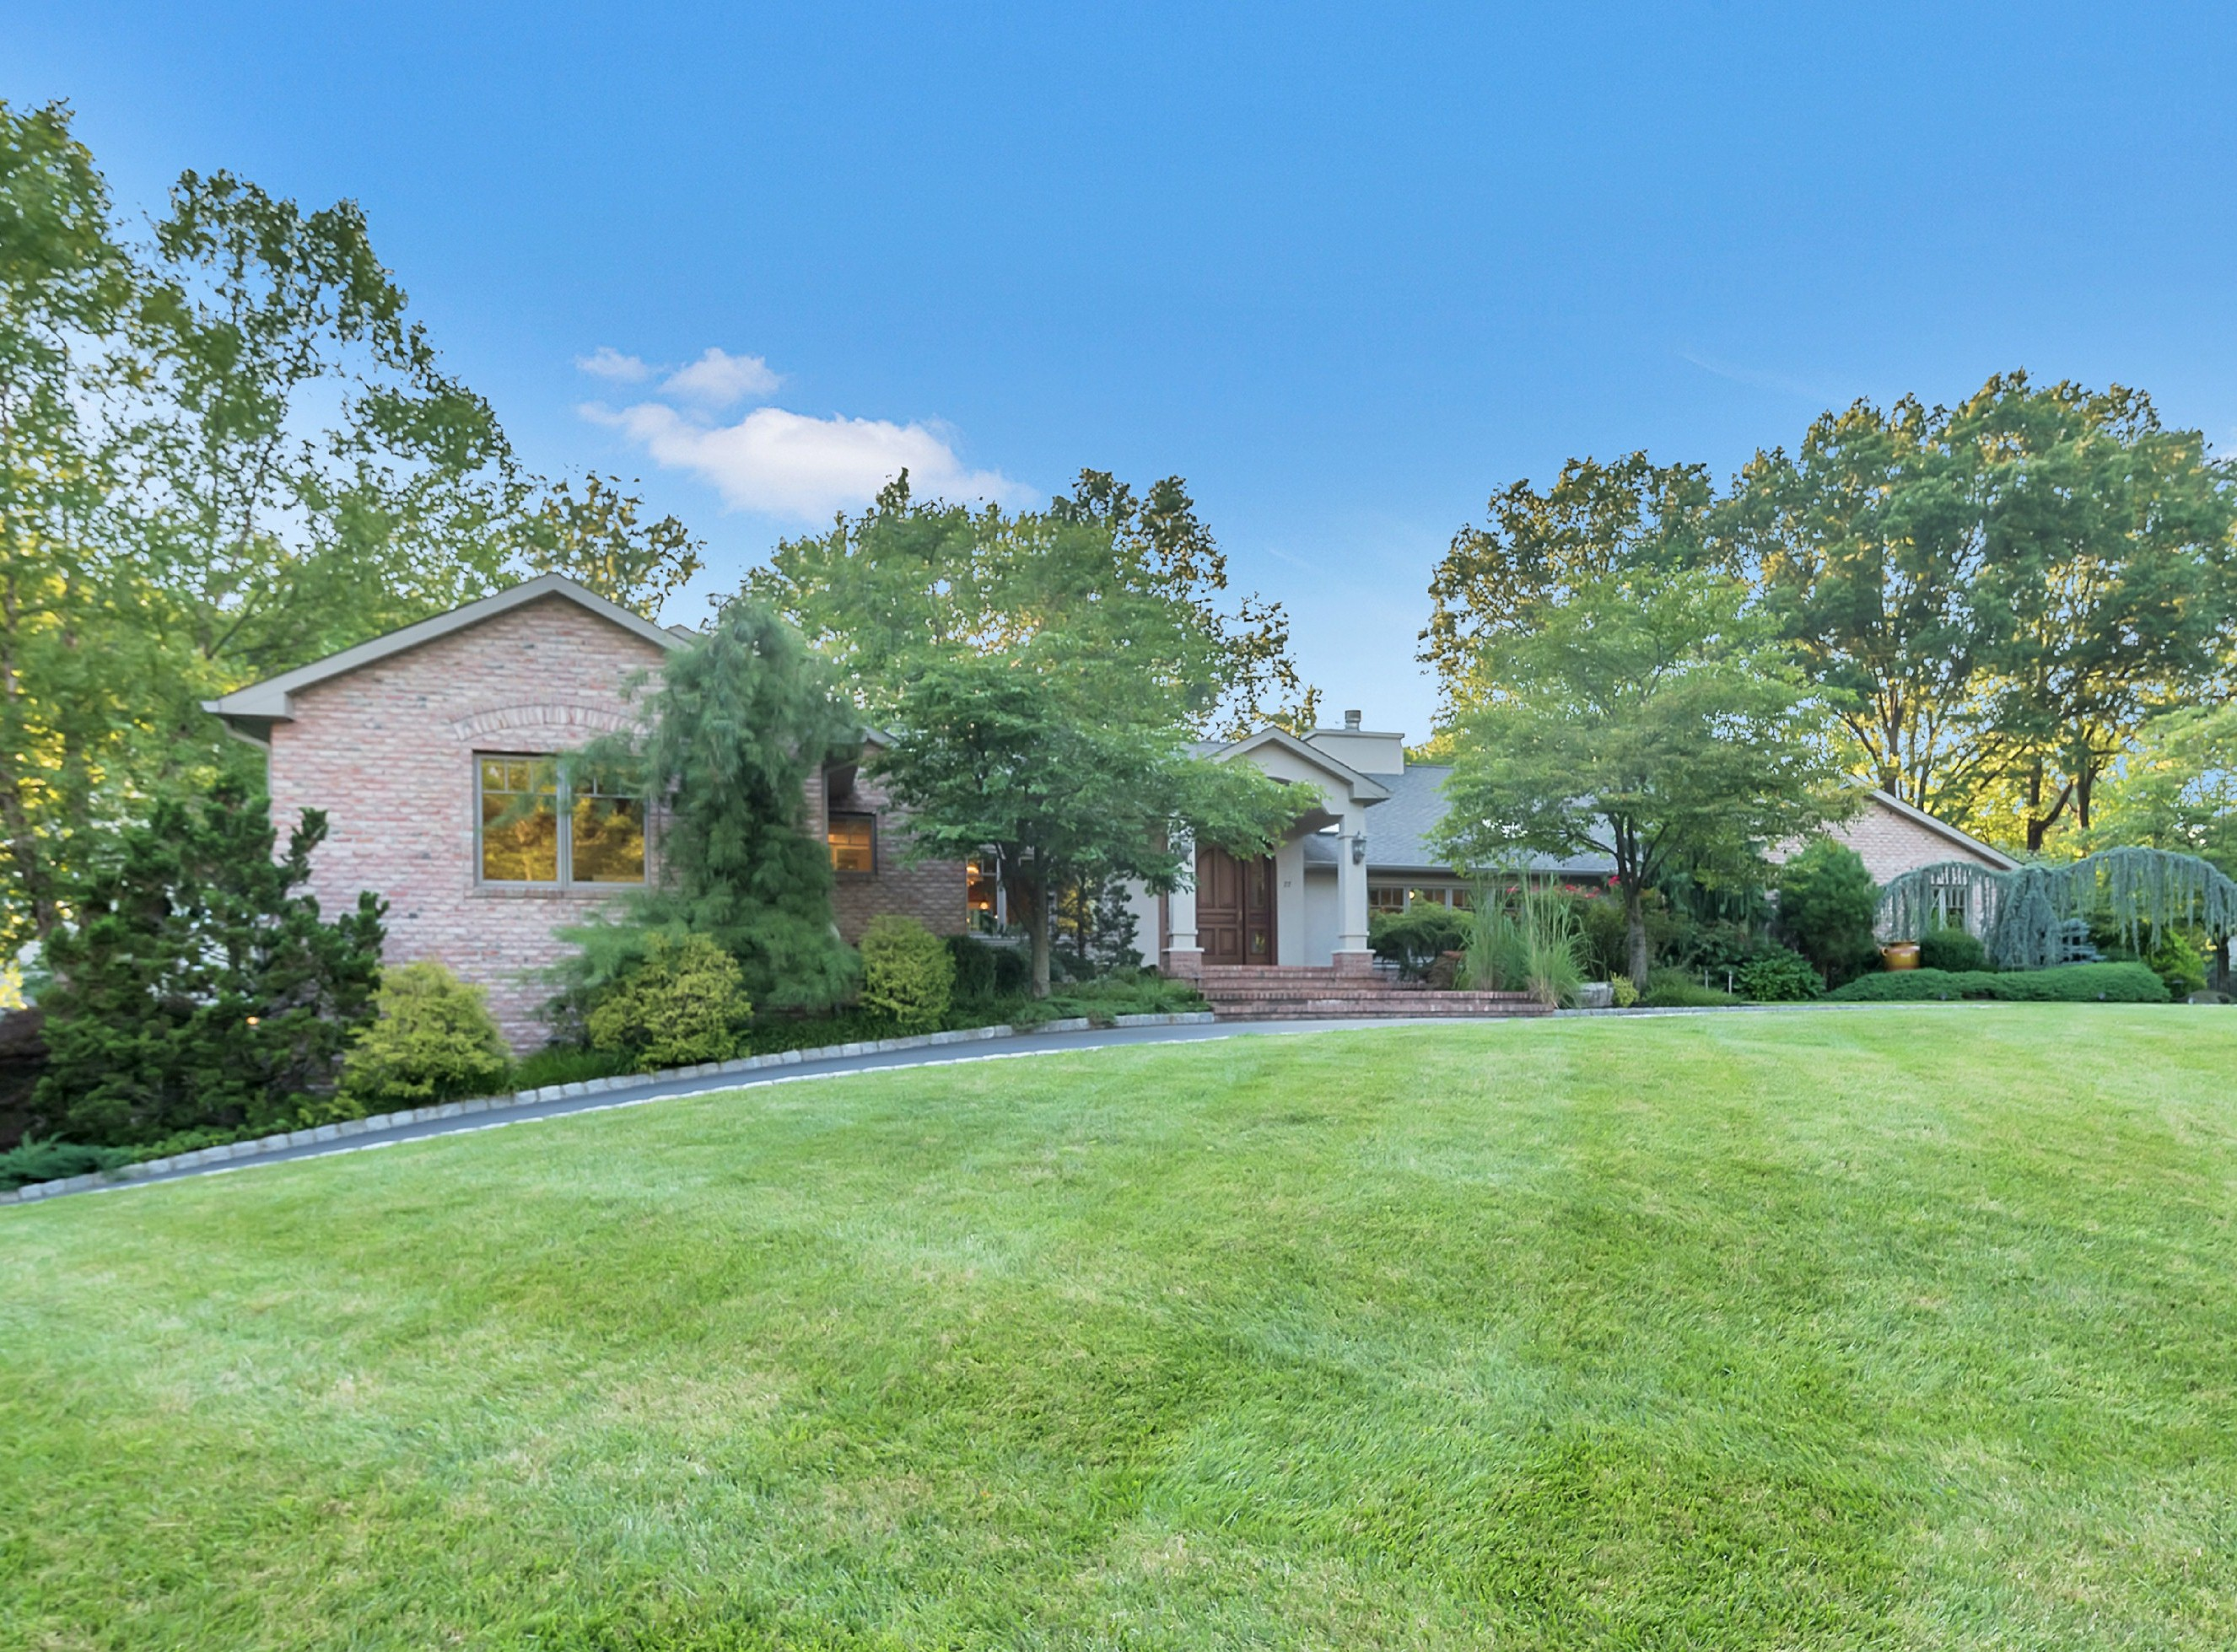 Single Family Home for Sale at Gracious Indoor & Outdoor Living 22 Fenimore Drive Scotch Plains, 07076 United States